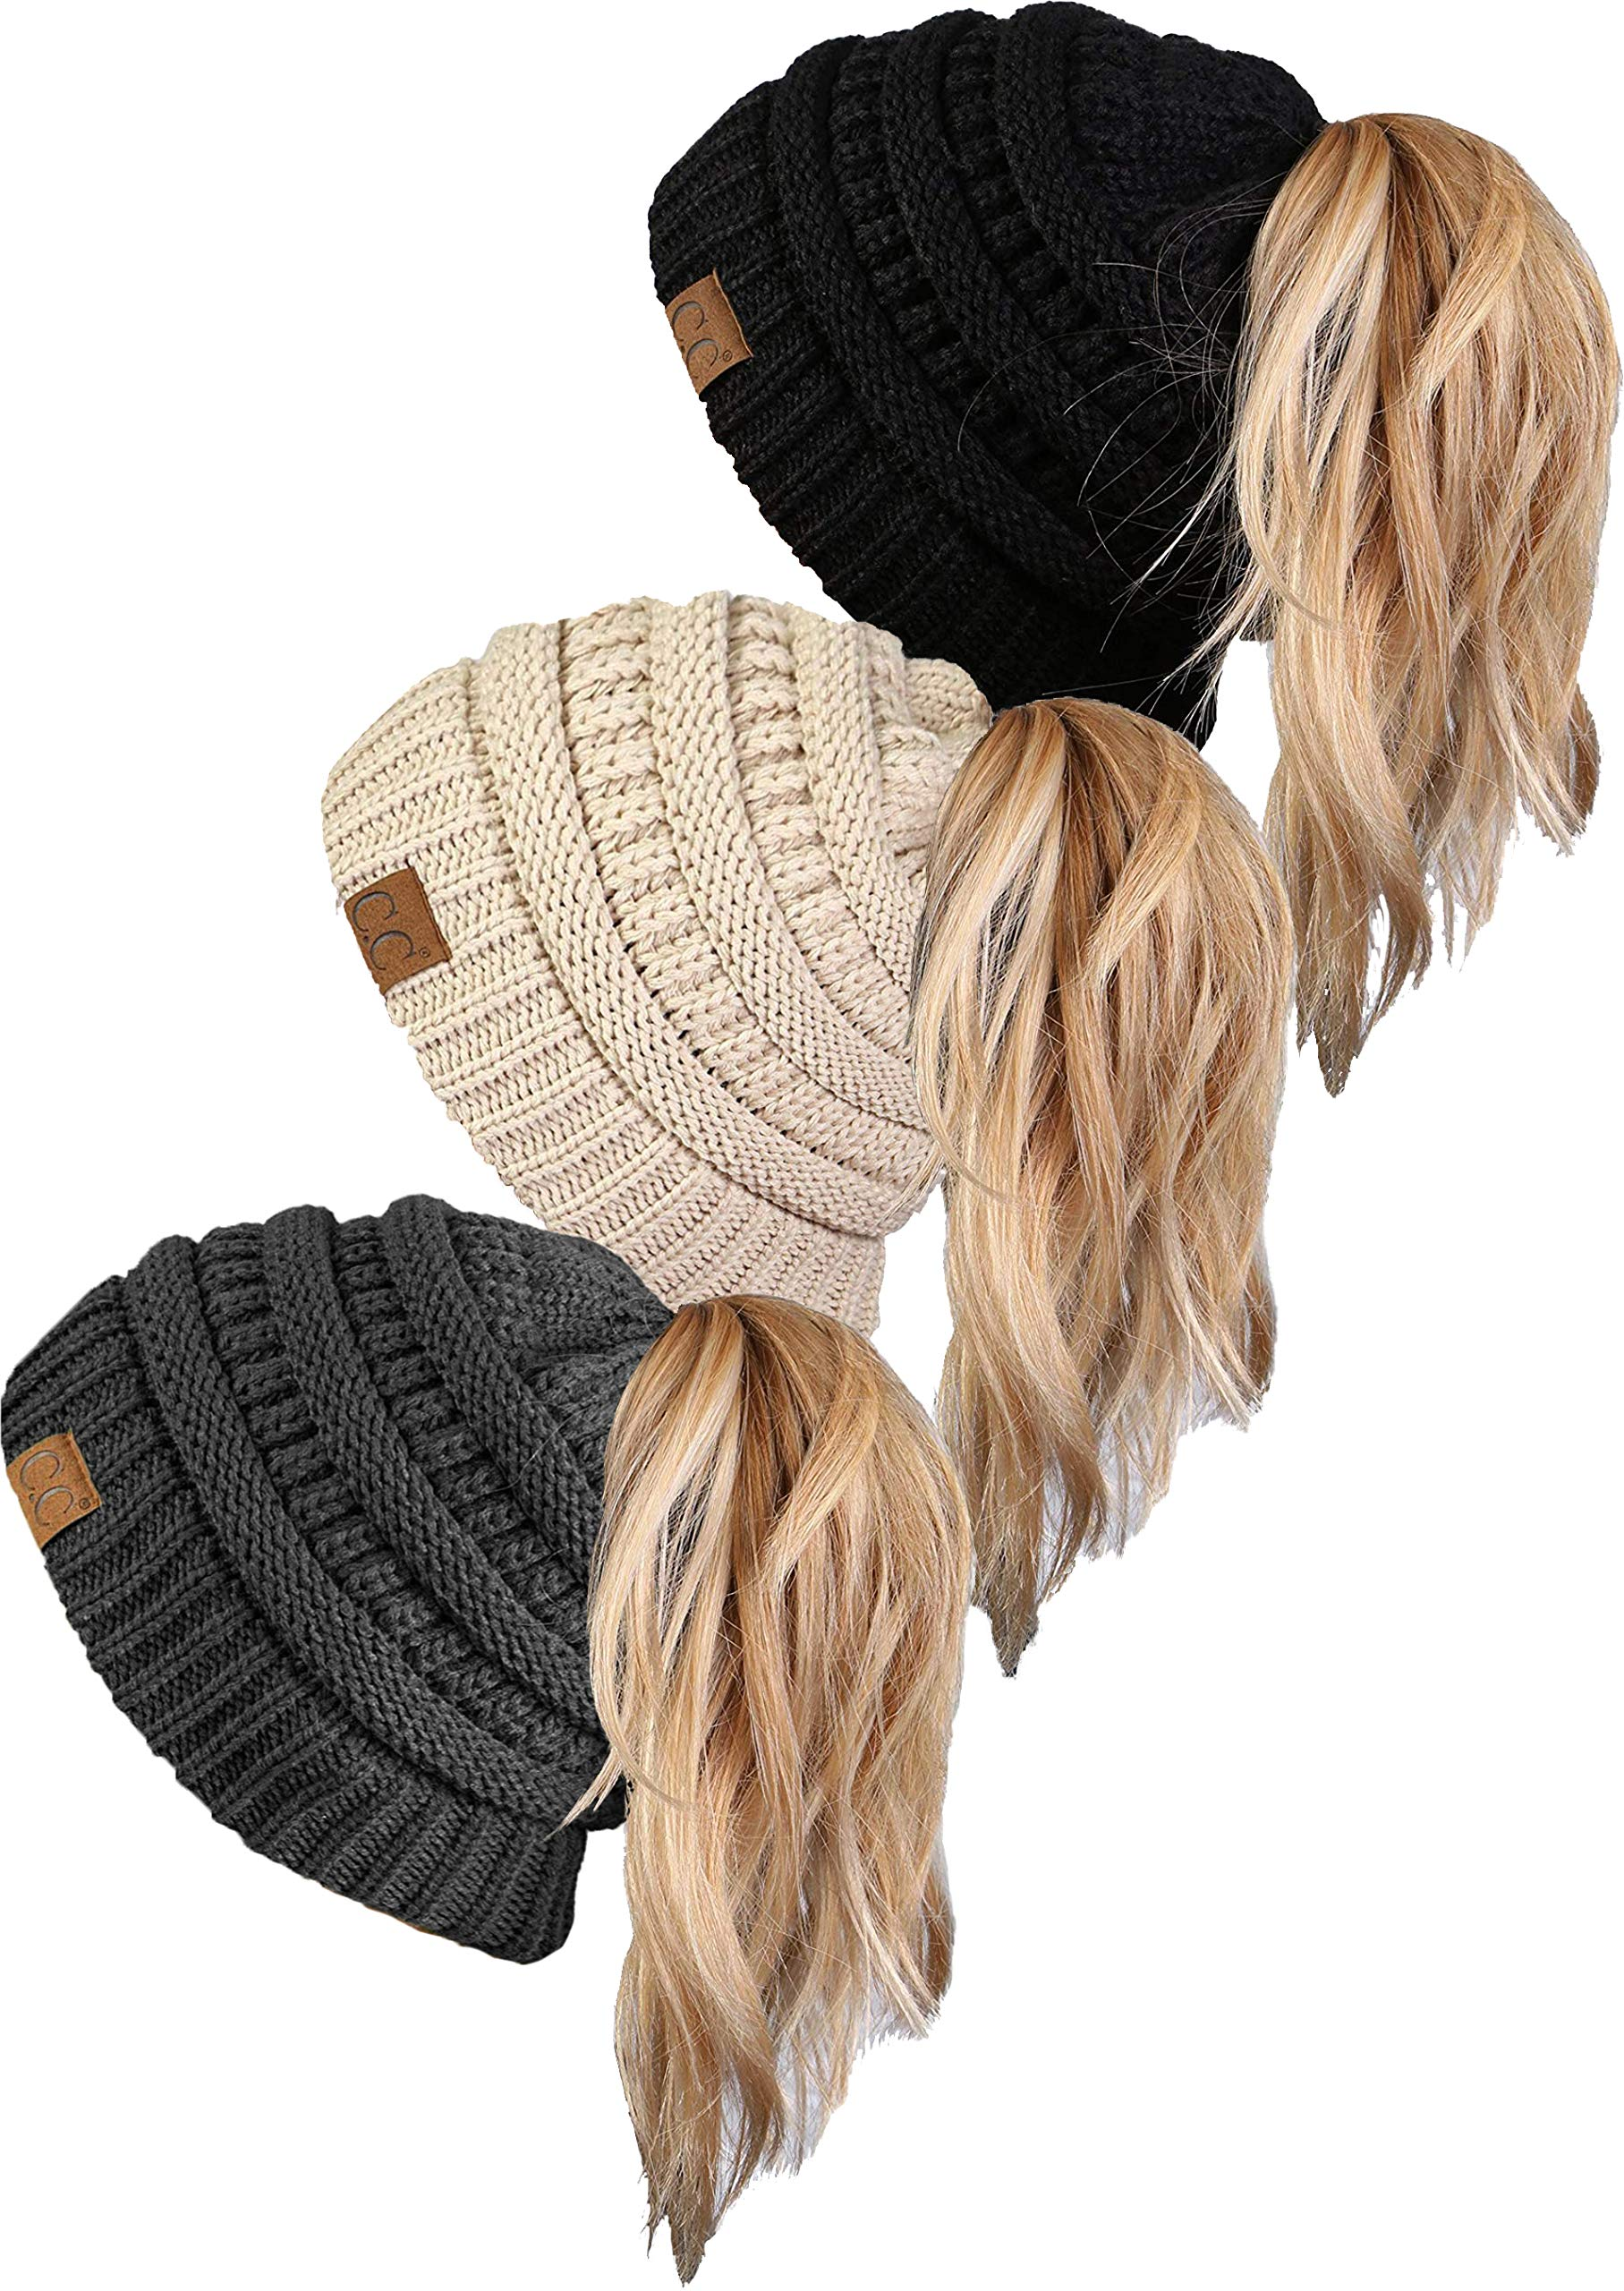 BT-6020a-3-066070 Messy Bun BeanieTail Bundle - Black, Beige, Charcoal (3 Pack) by Funky Junque